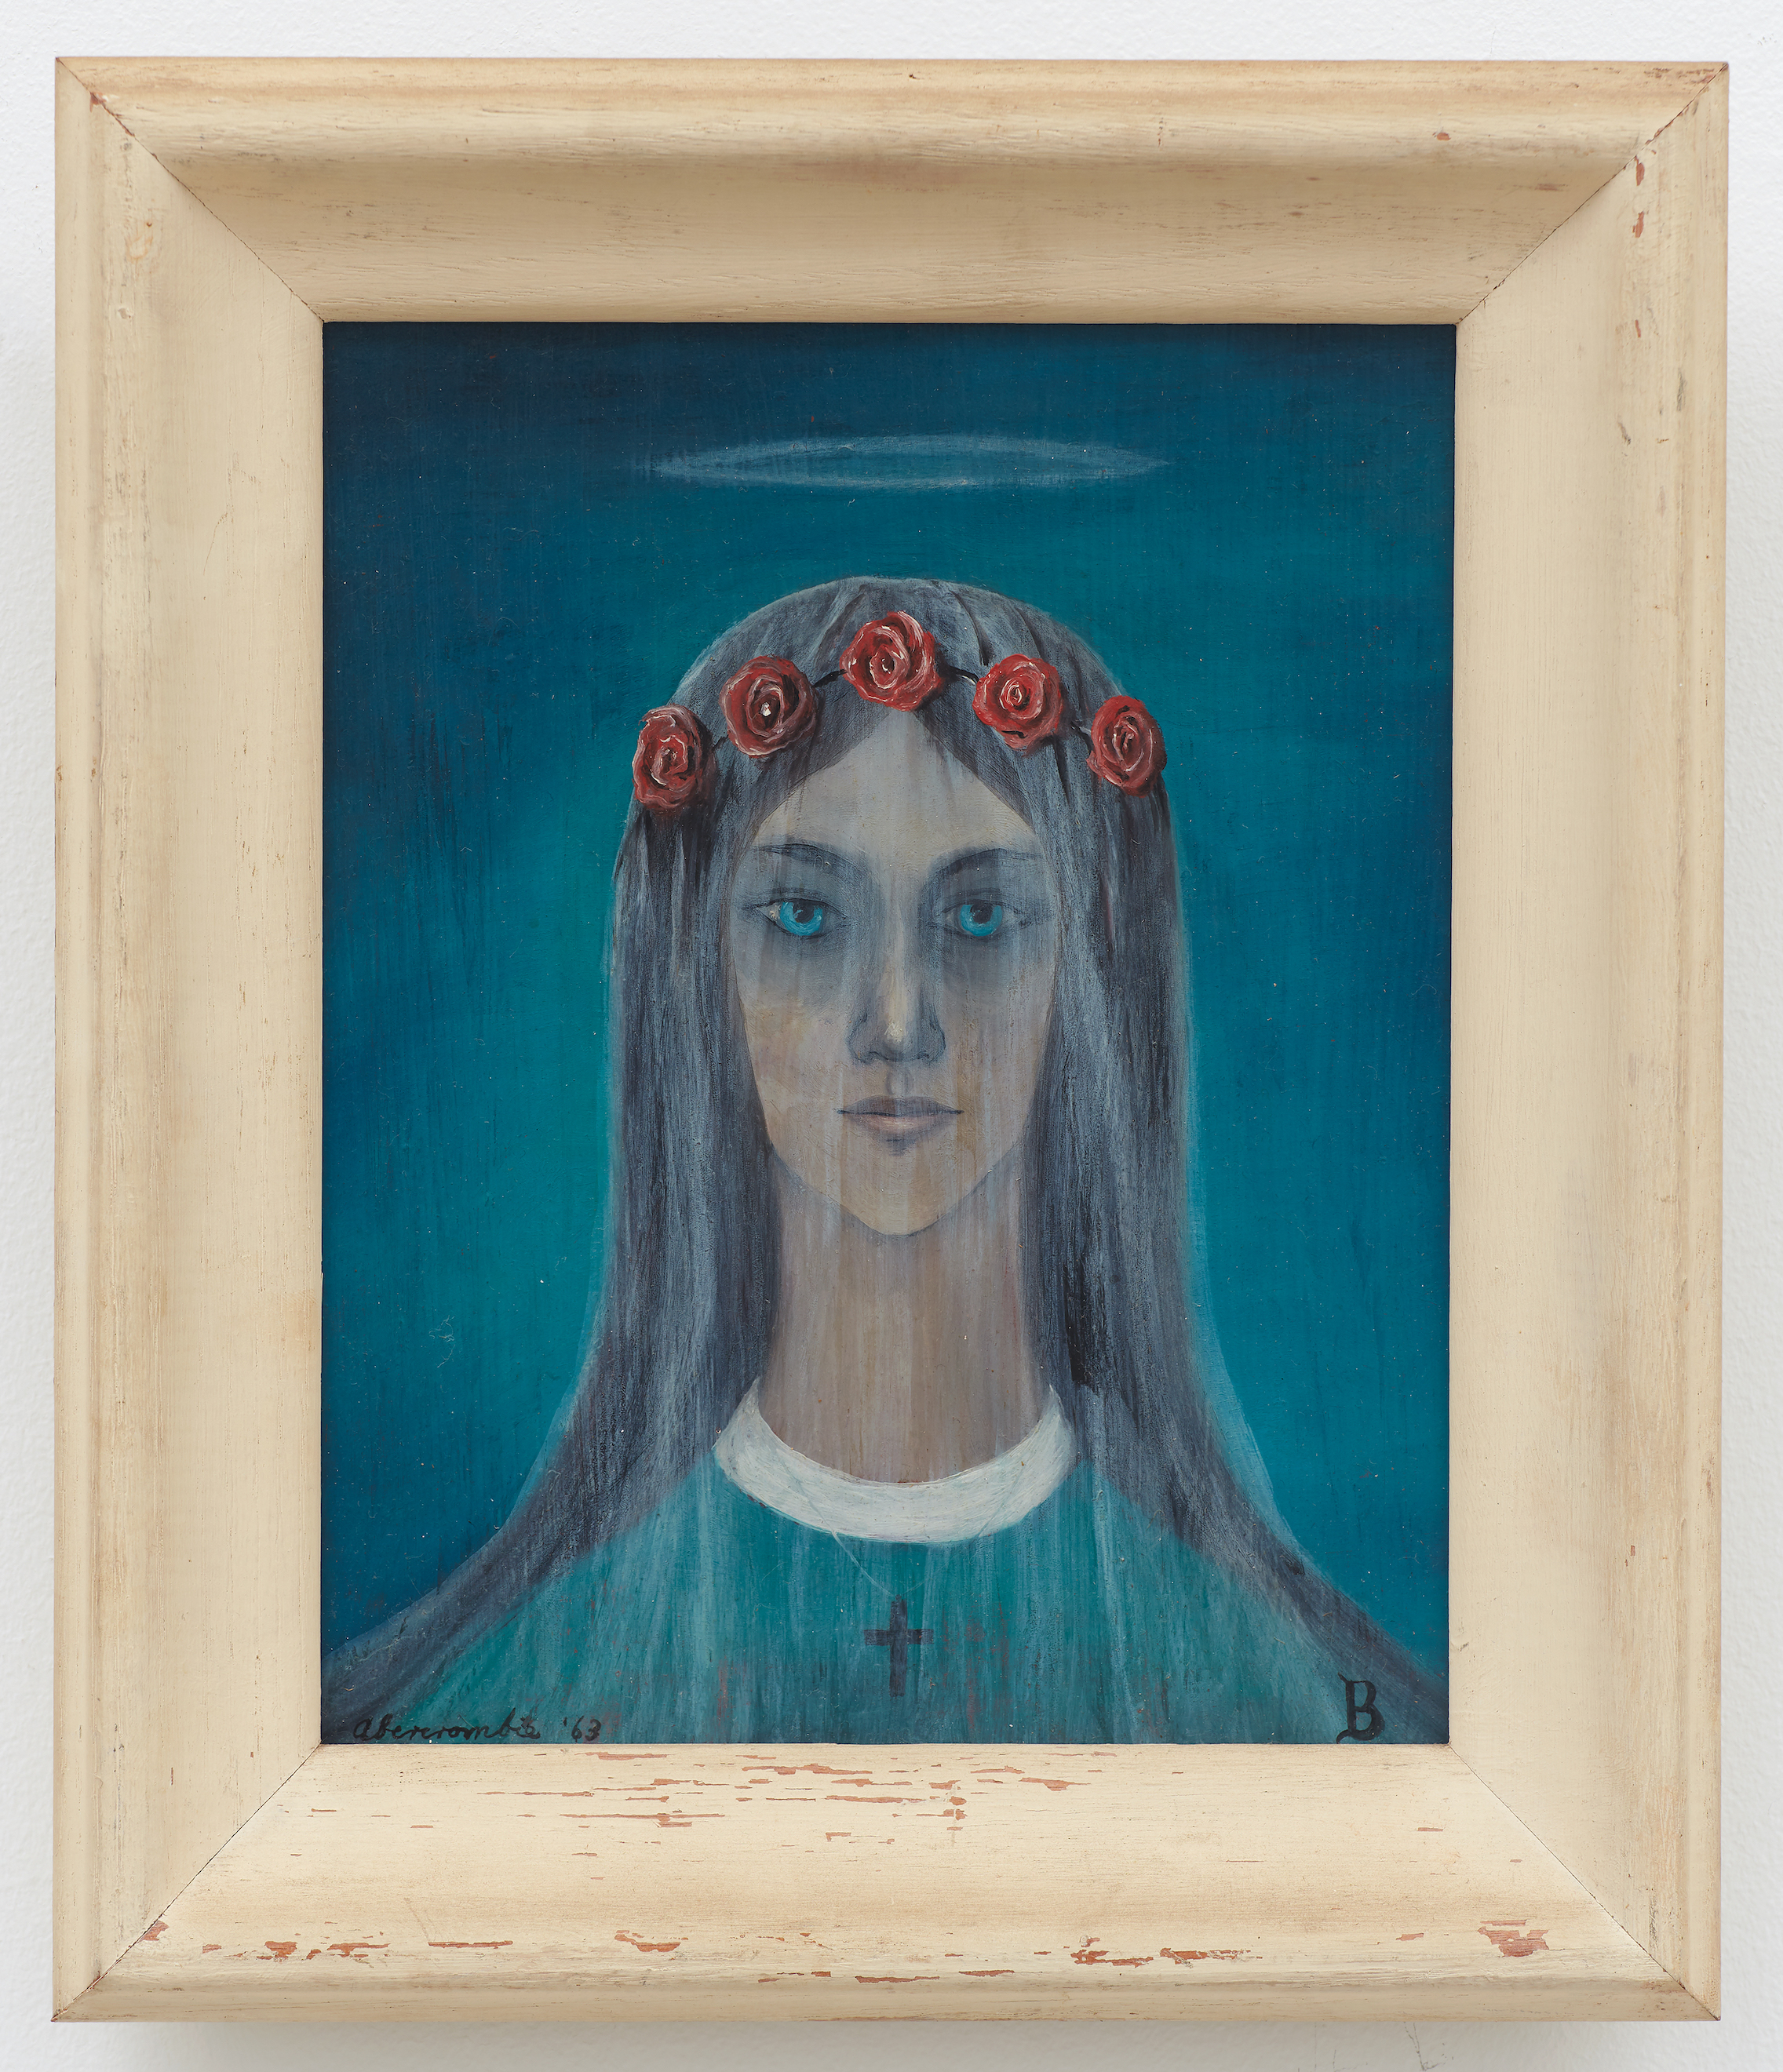 St. Brigit , 1963, Oil on board, 8 × 10 inches (unframed); 12 1/2 × 10 3/4 inches (framed). Private collection.